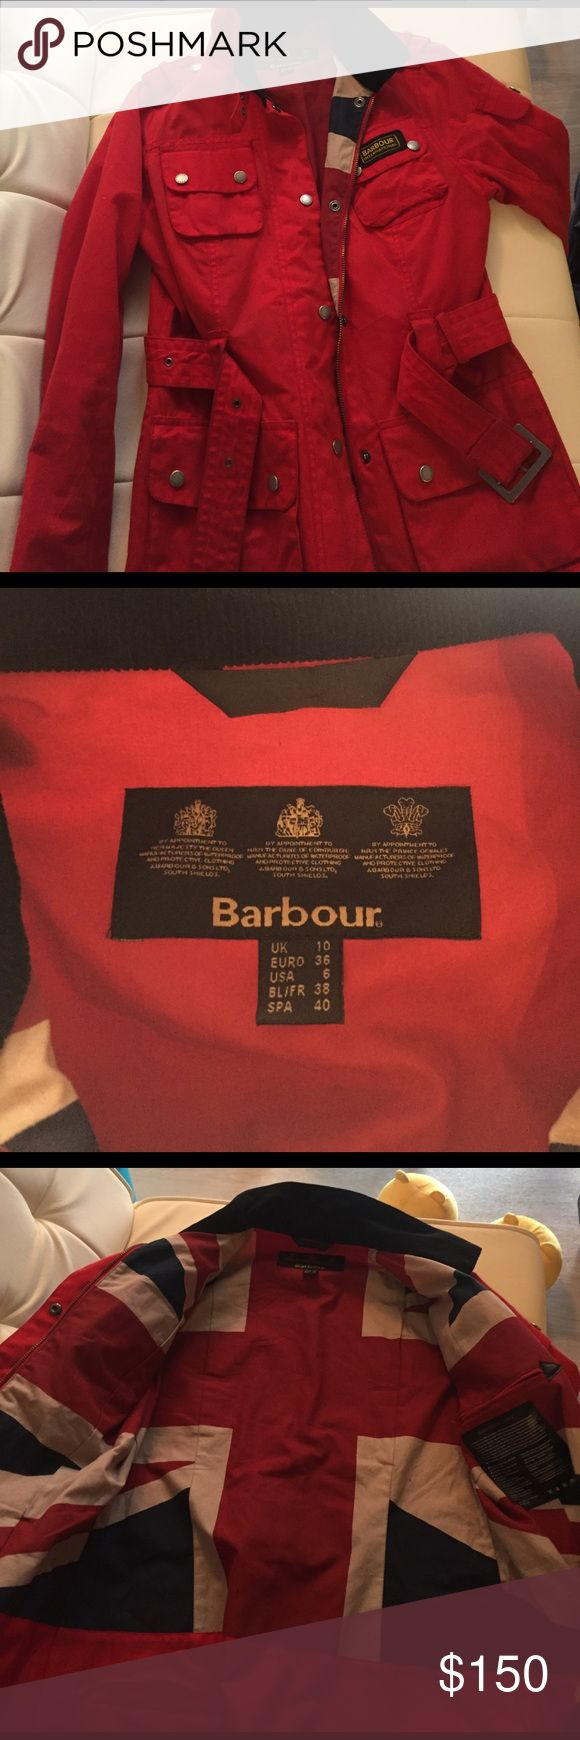 Barbour International Red jacket size 6 Originally $450+, worn twice. This jacket is in a great condition. Barbour Jackets & Coats